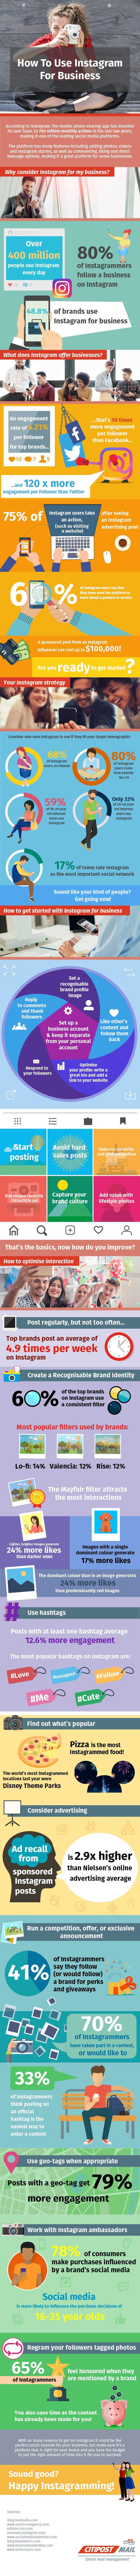 Why & How You Should Use #Instagram for #Business #Infographic